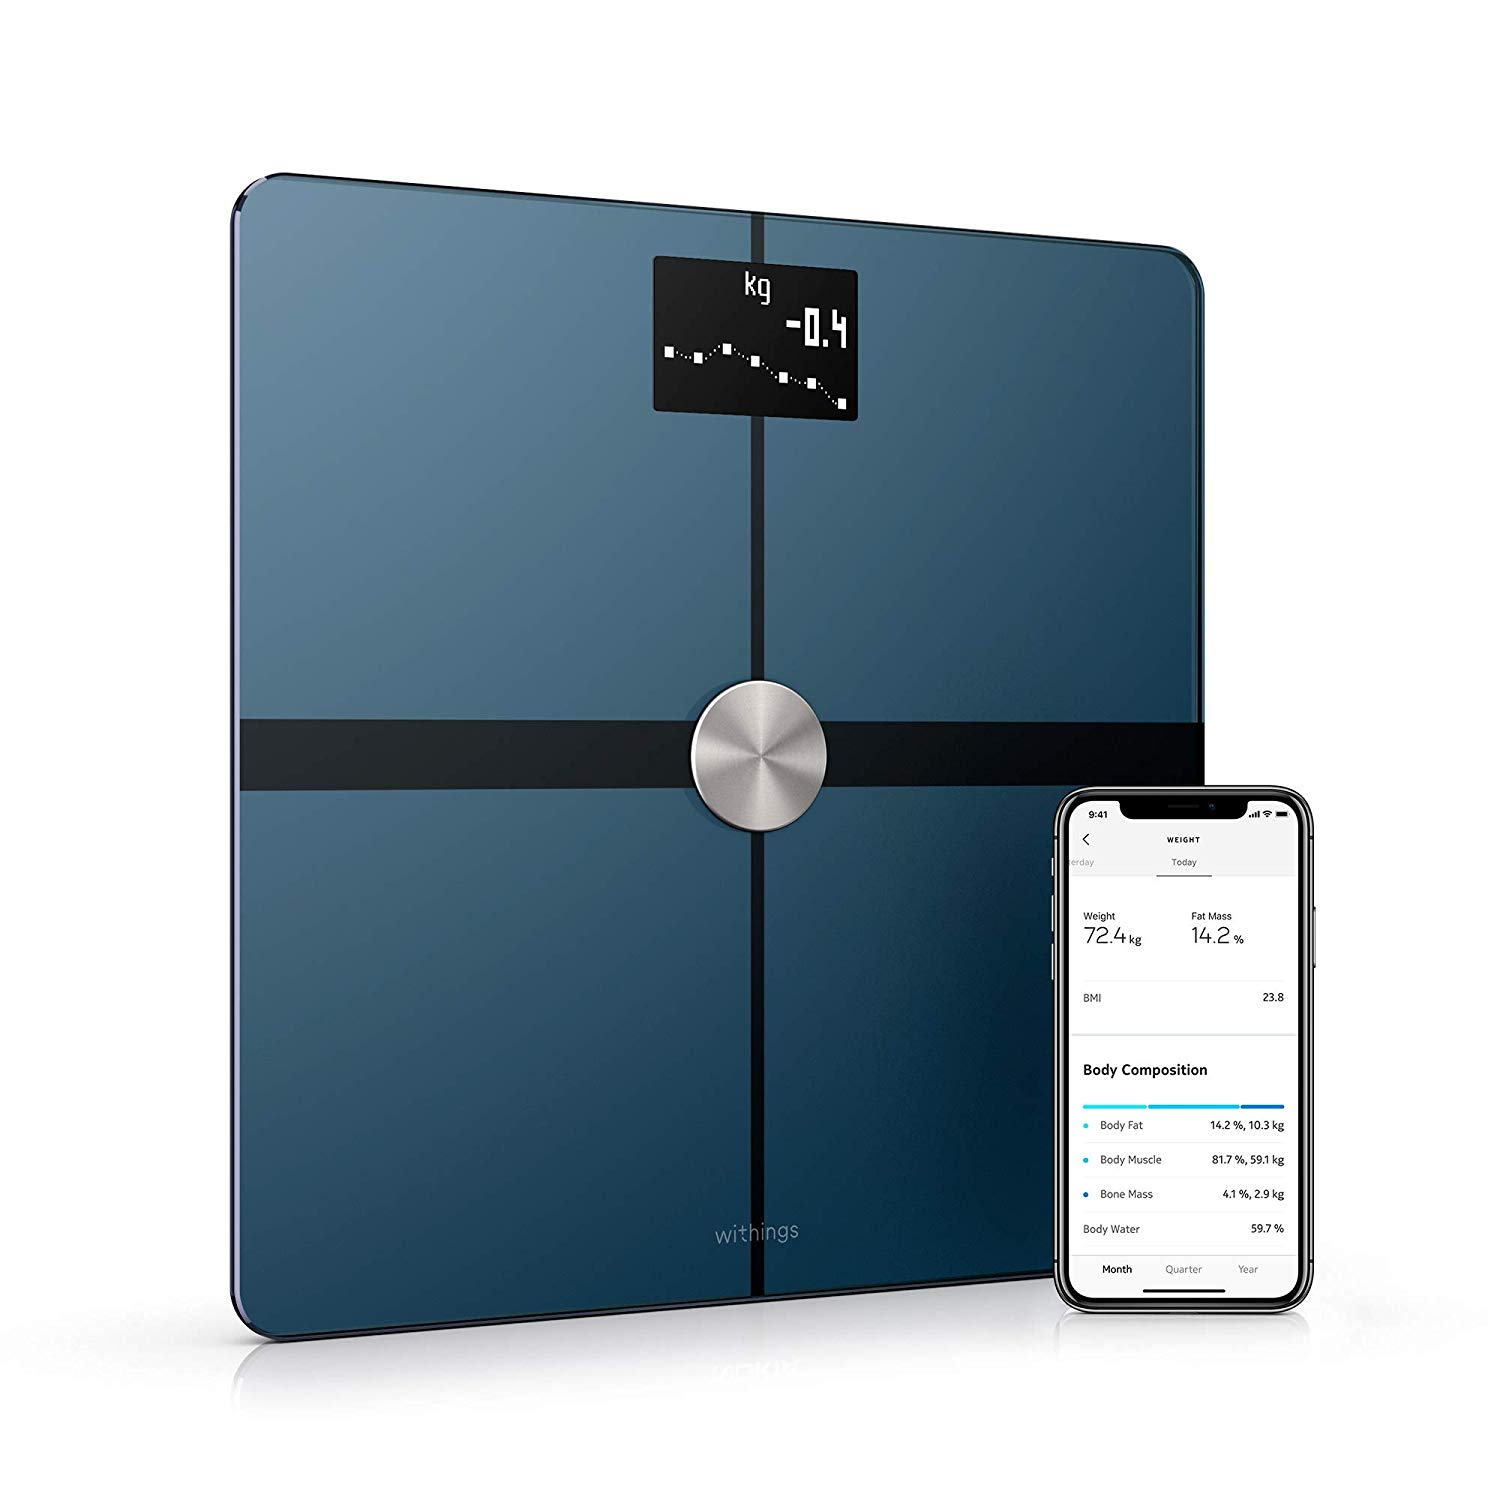 Best Smart Scale 2019 Best smart scales in the UK for 2019